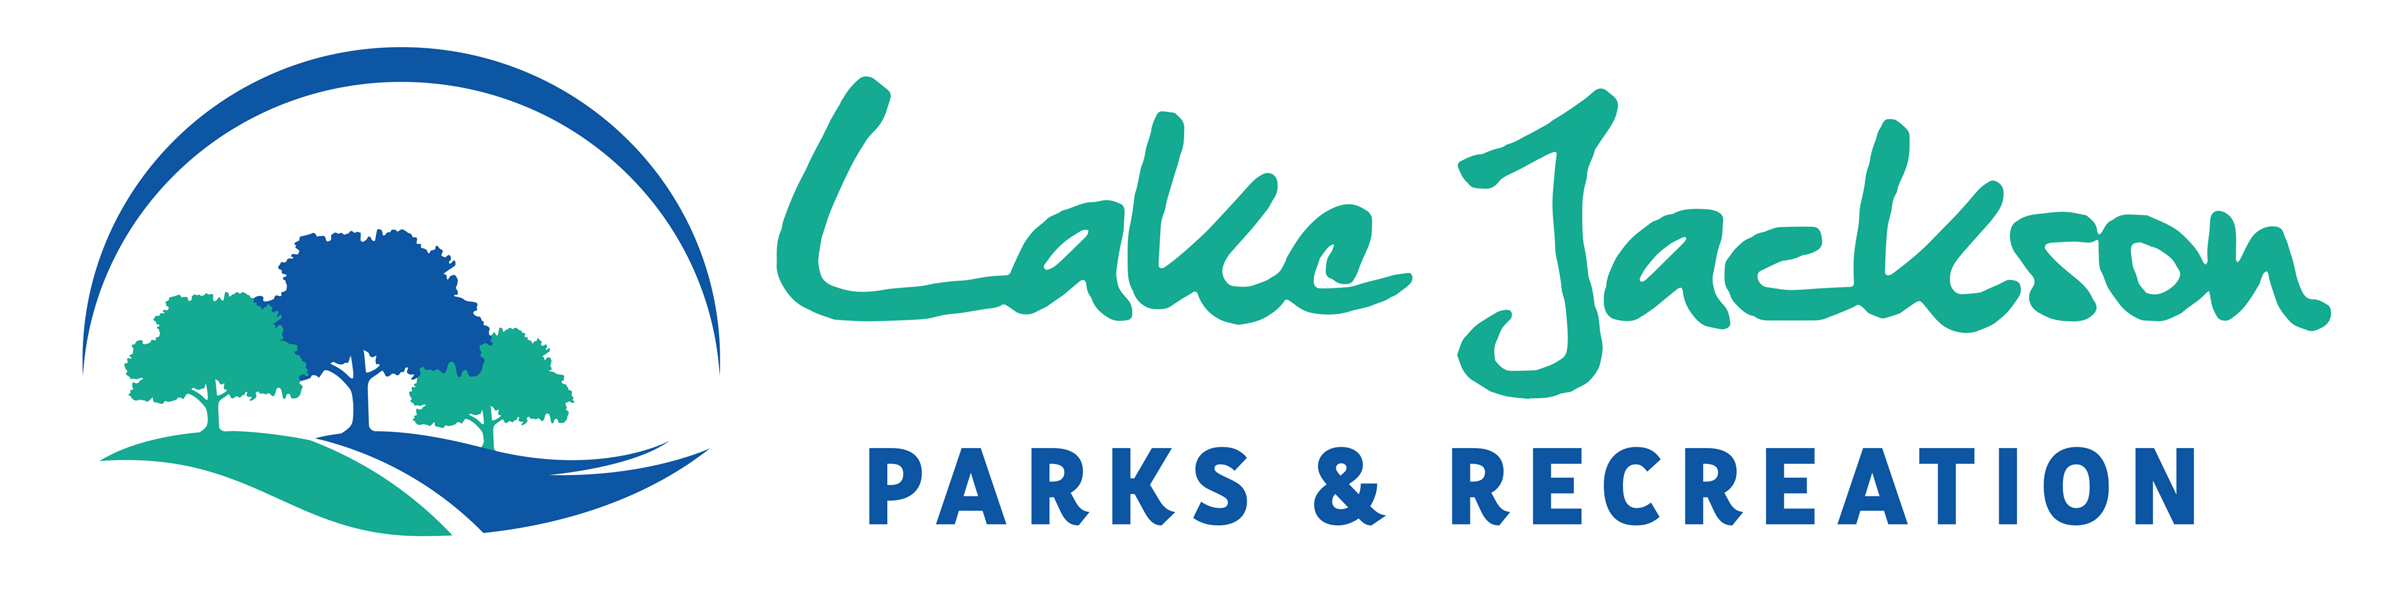 Parks Logo (Long)-8whiteol.png